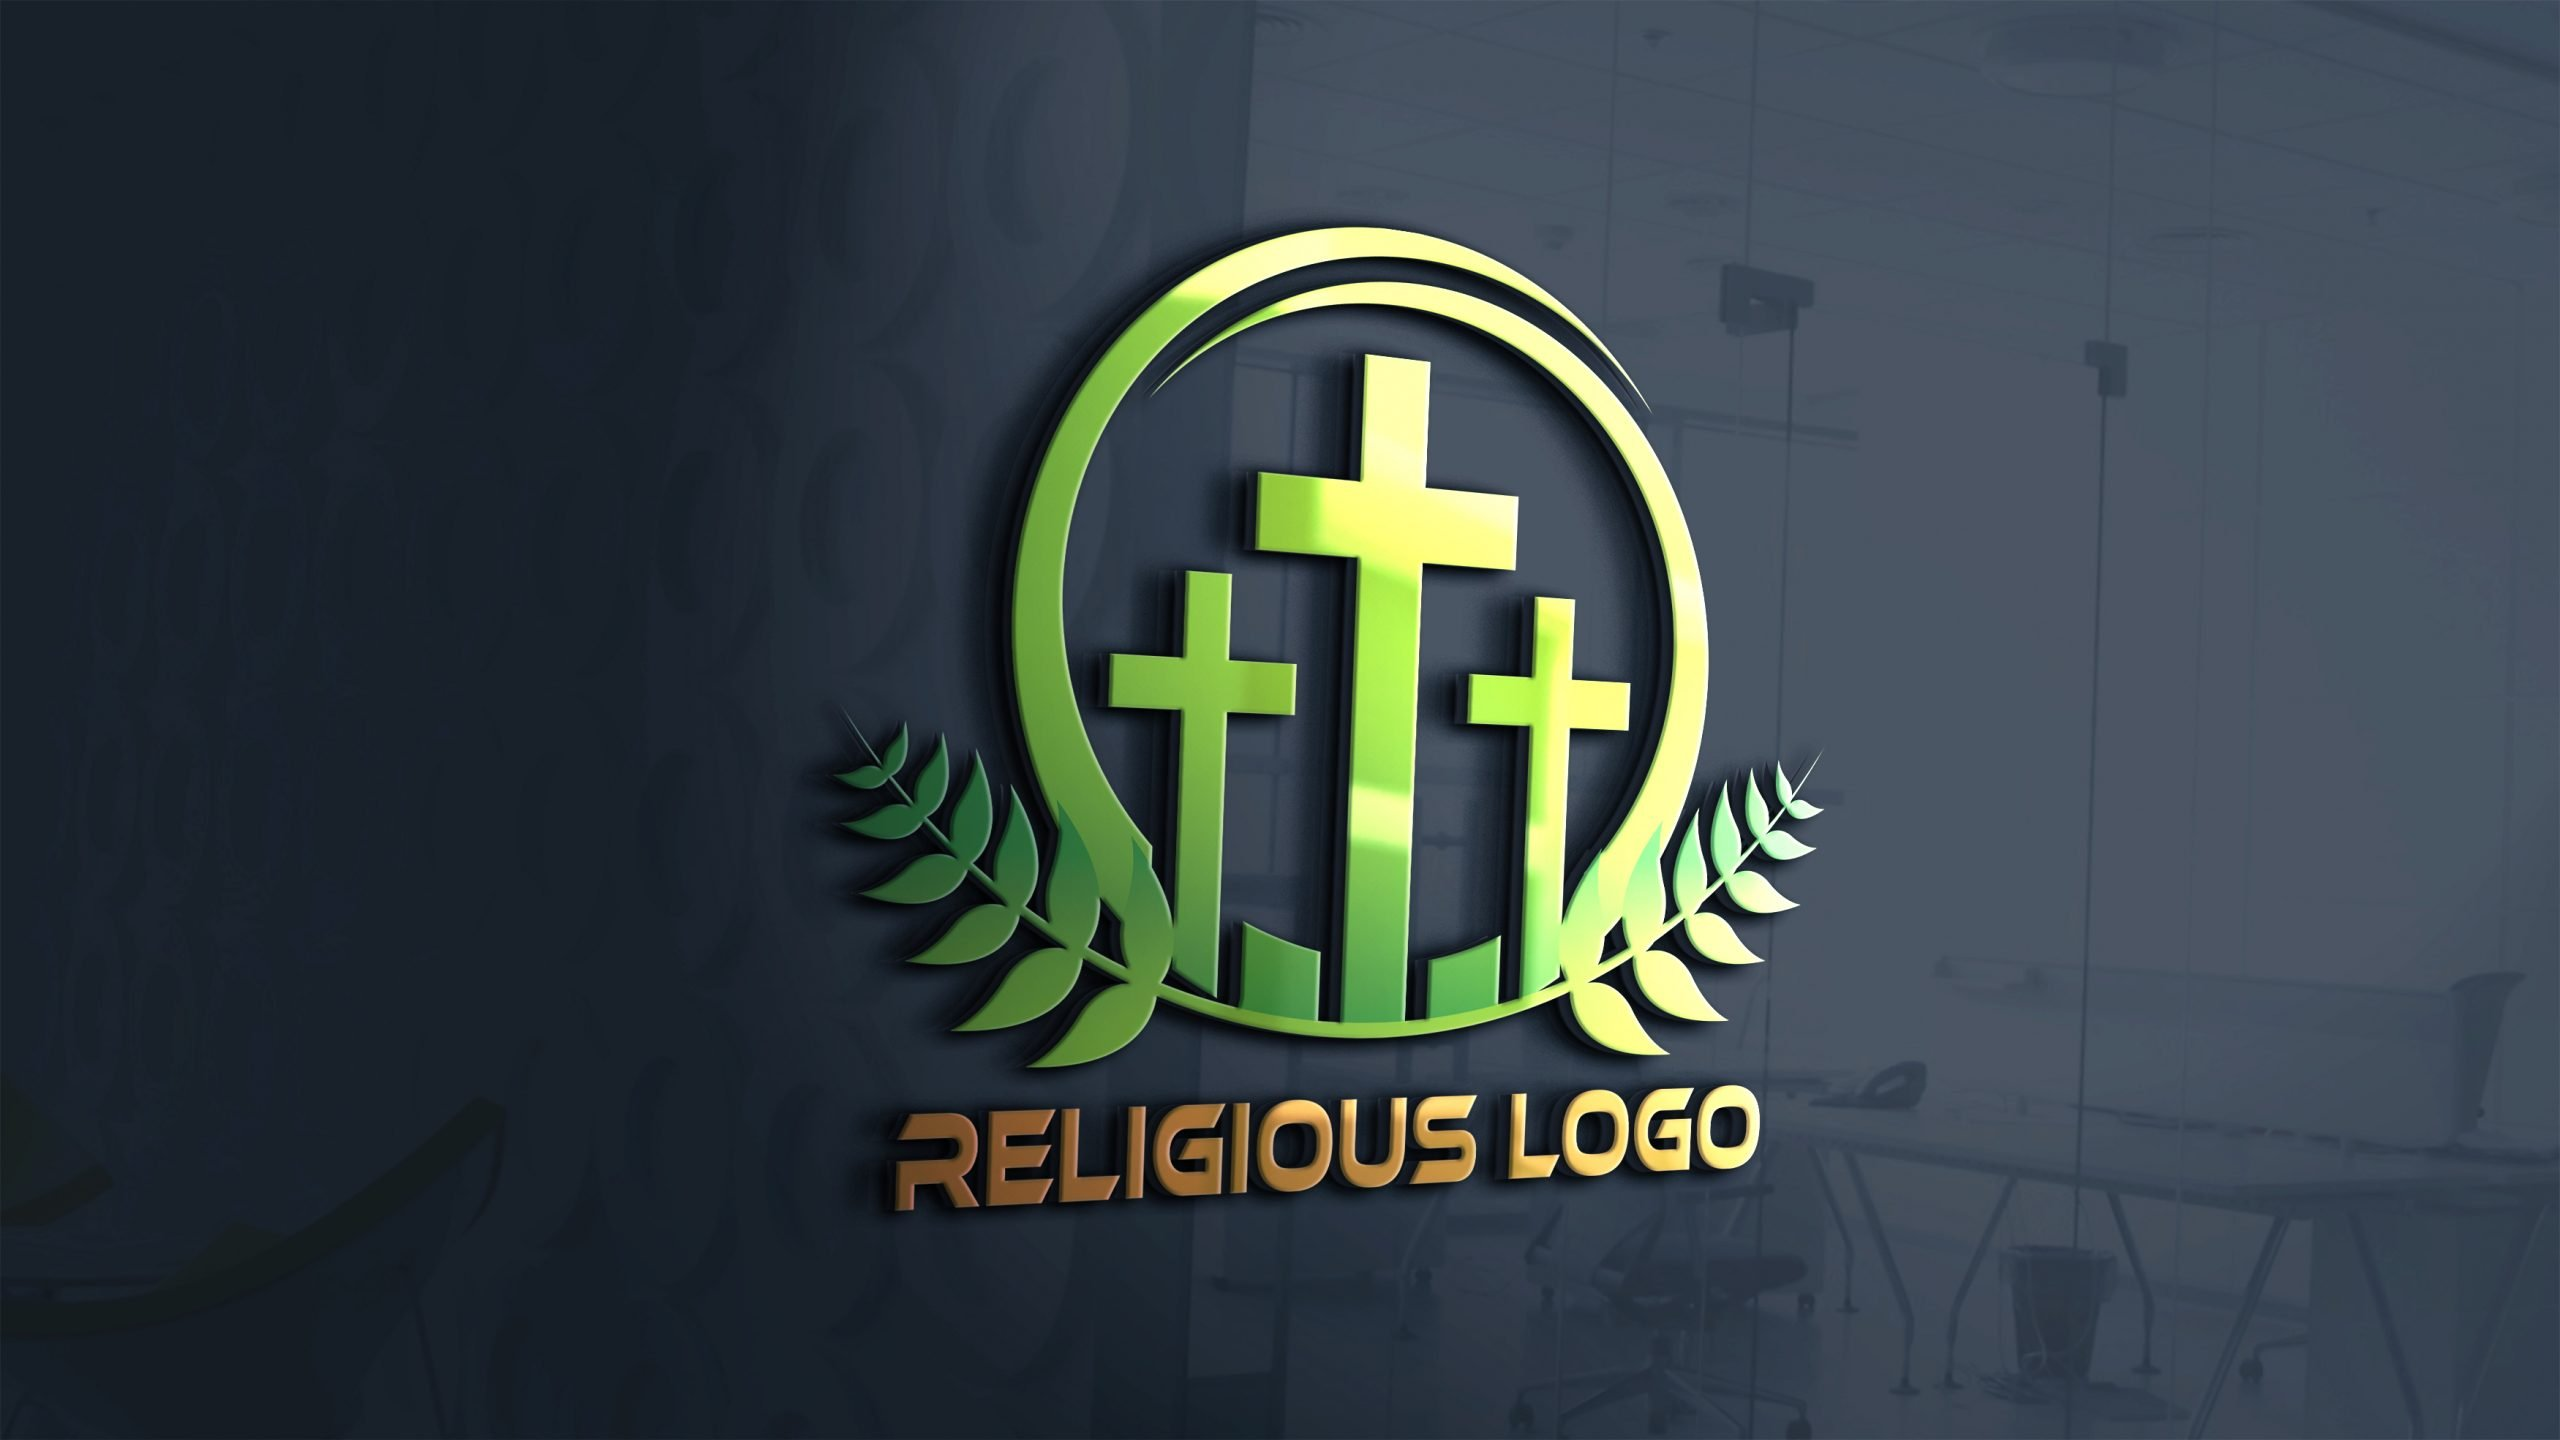 Religious and Spirituality Logo Template on 3d office wall